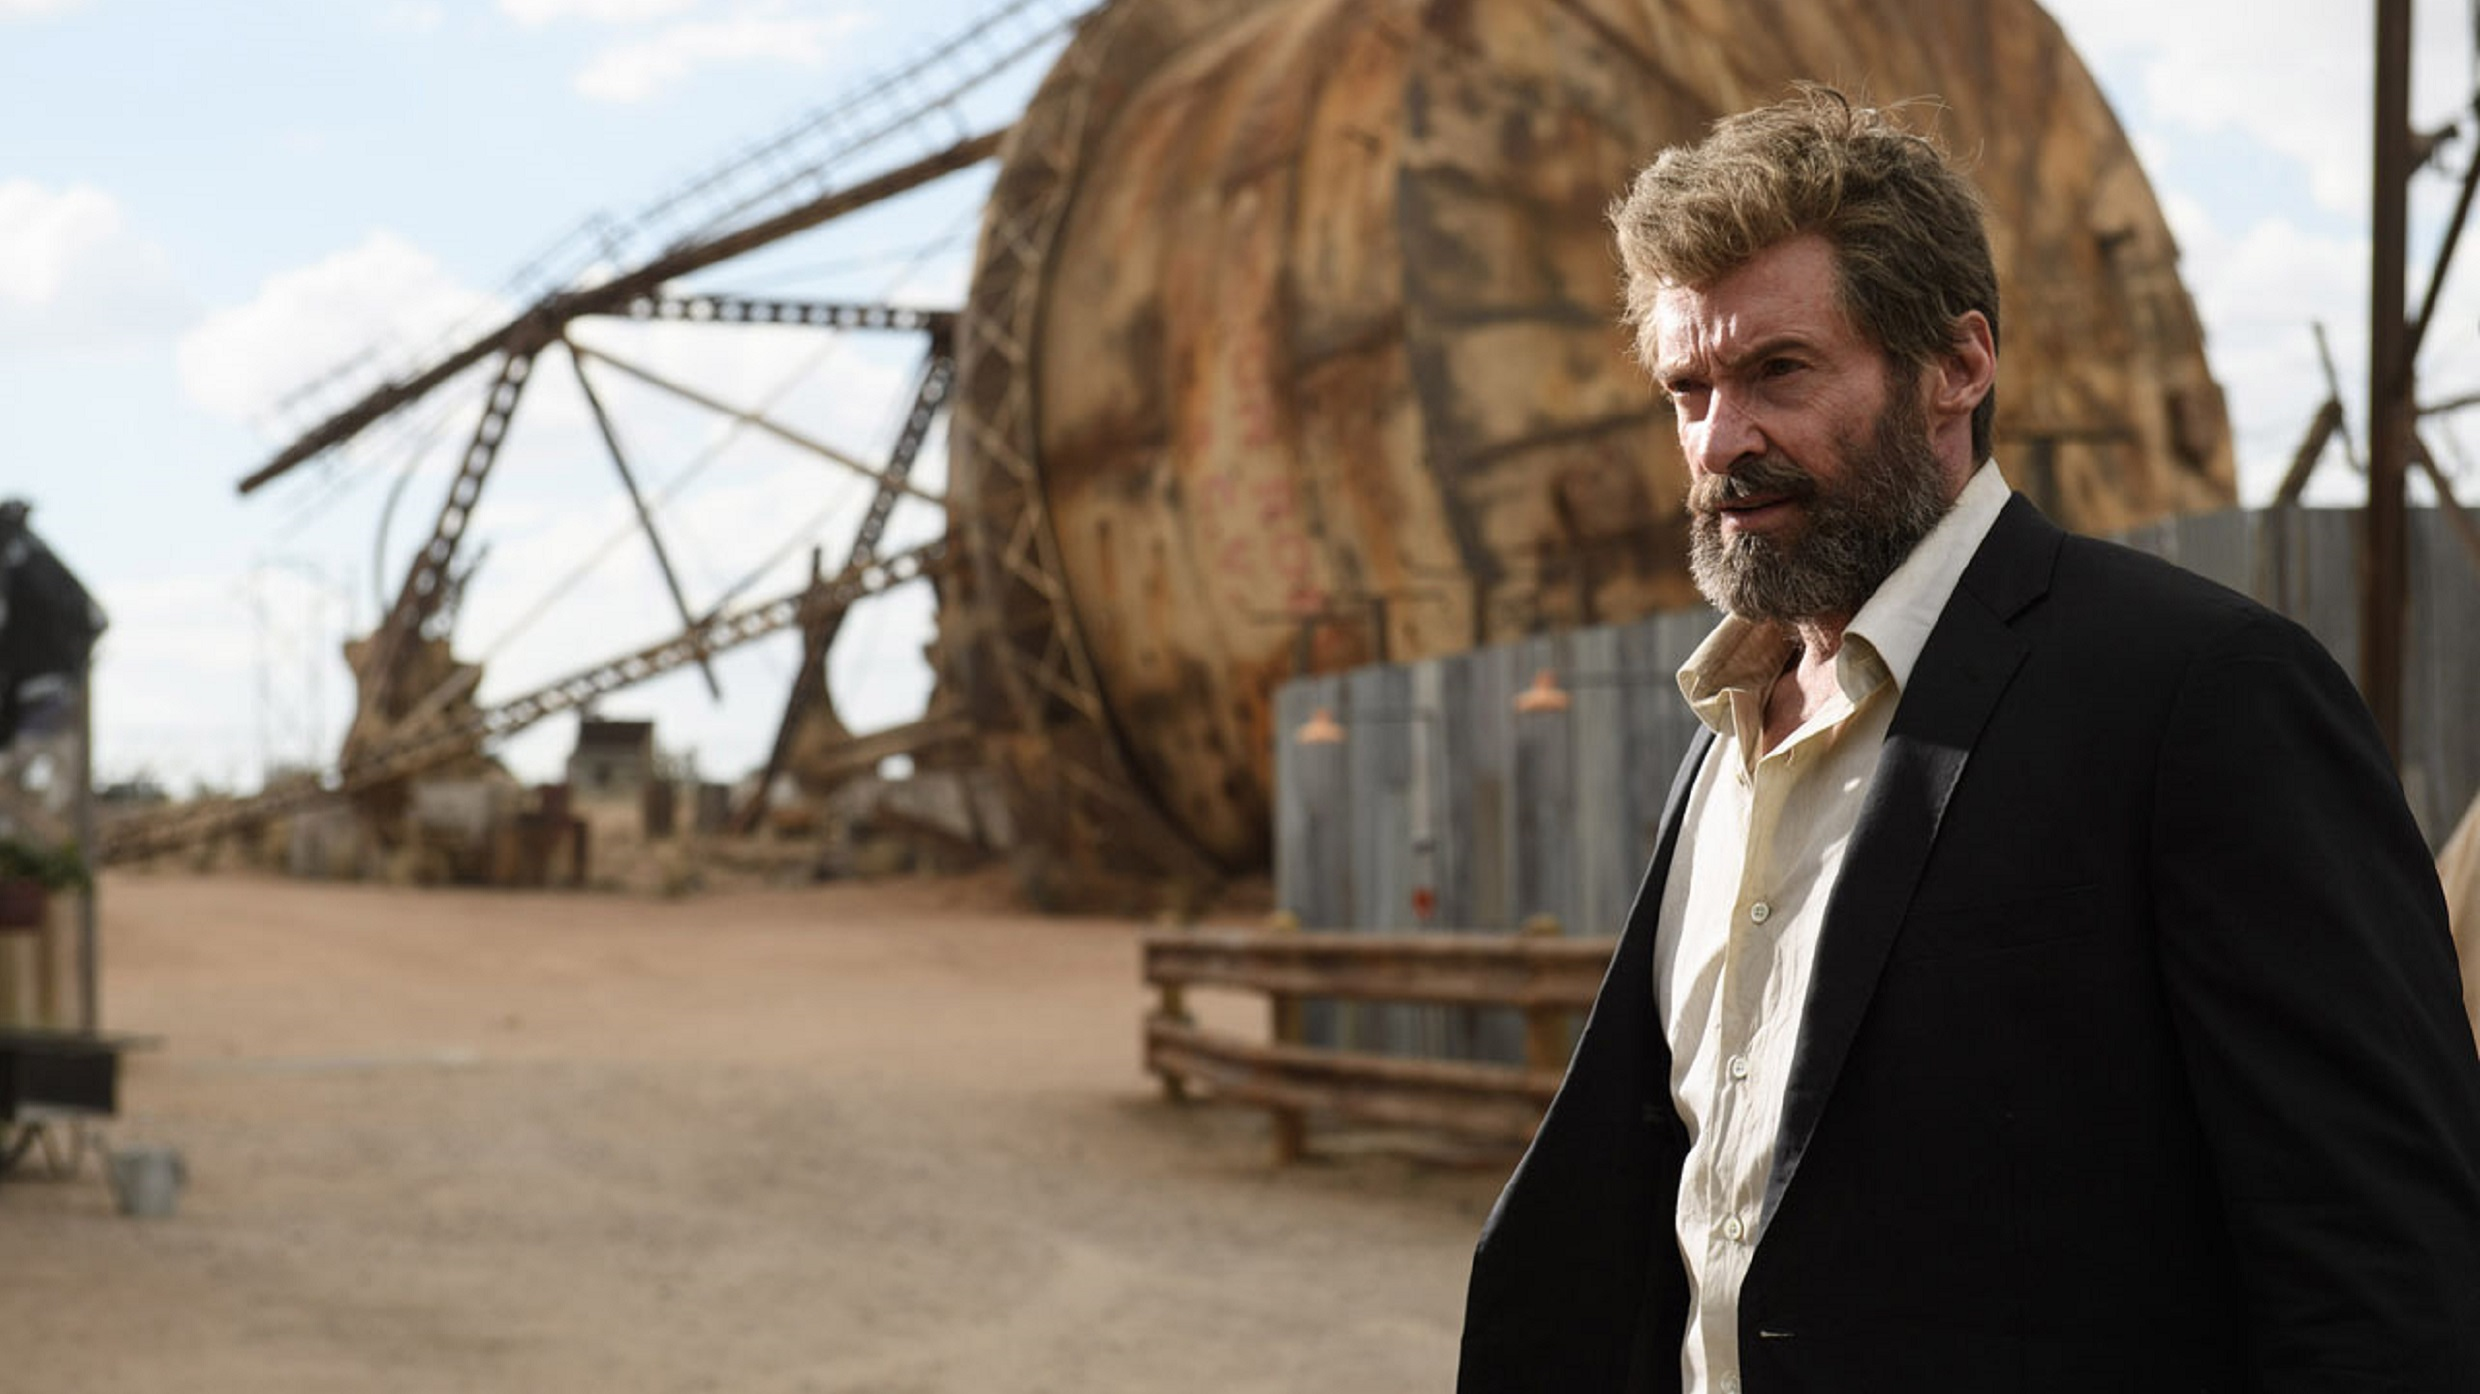 'Logan' Ending Explained: James Mangold Breaks Down the Wolverine's Conclusion